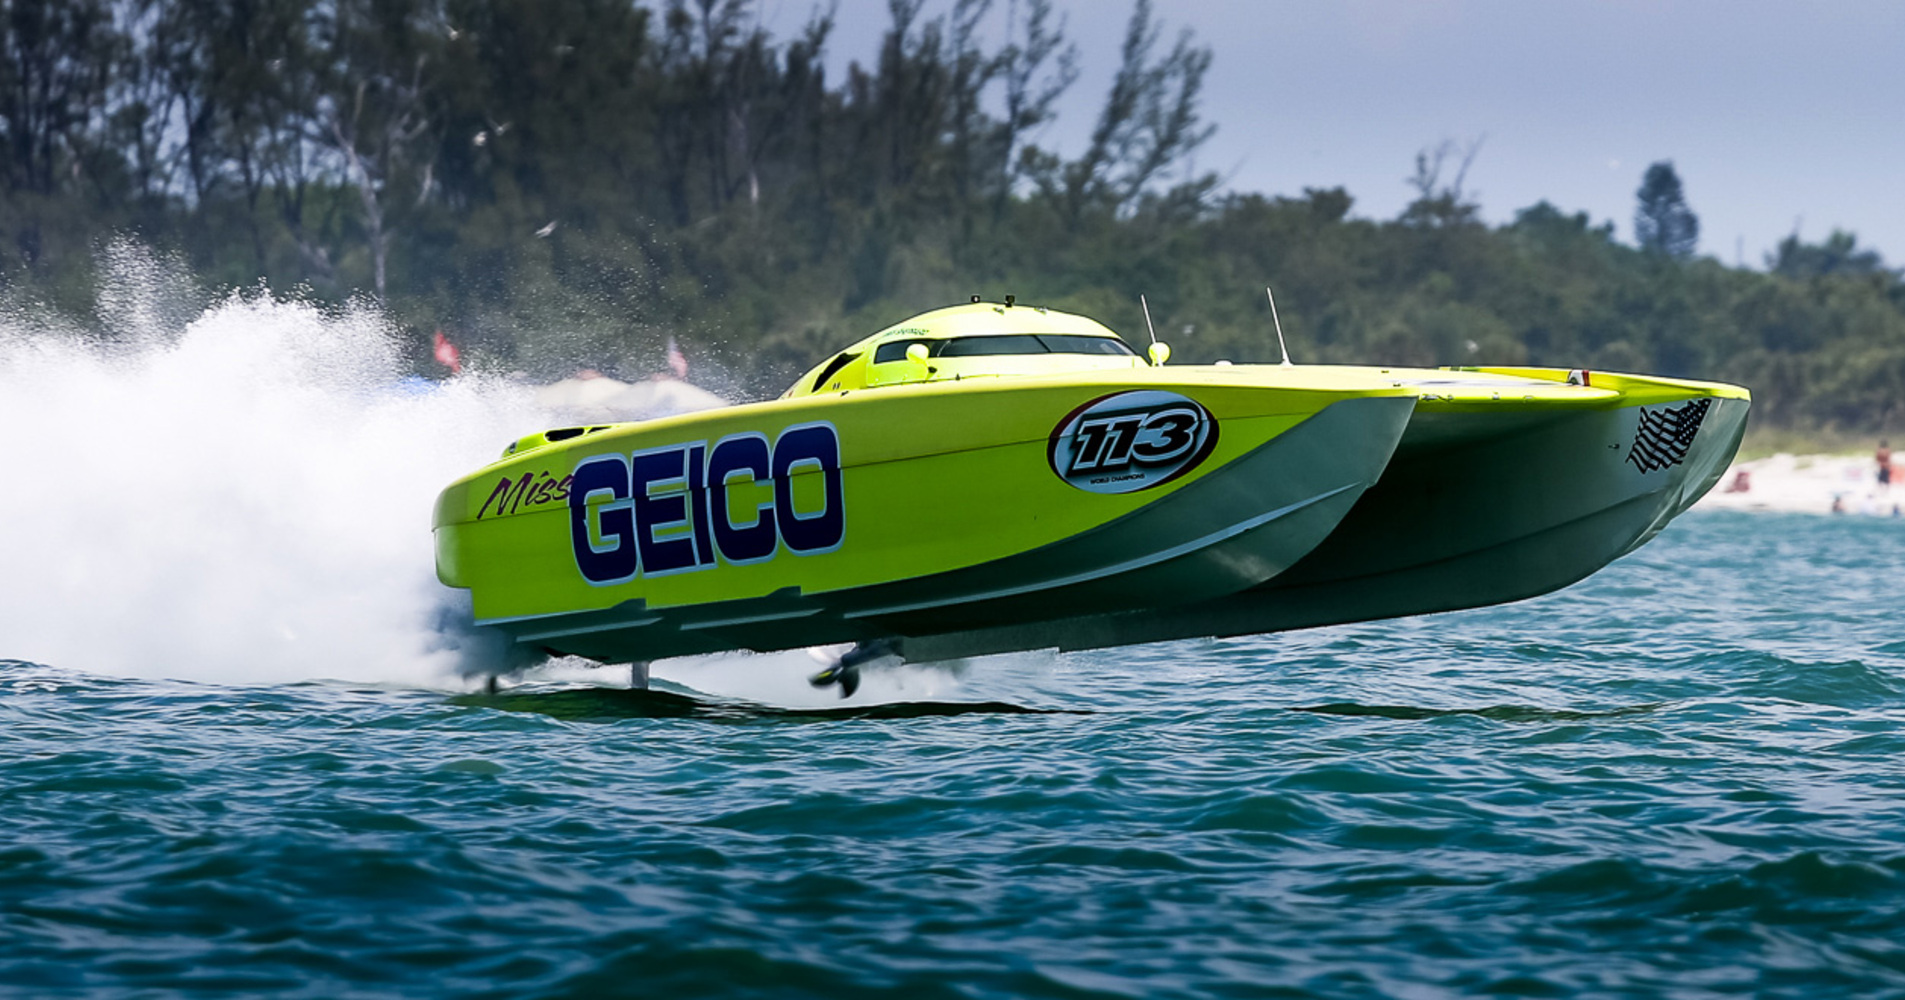 New partnership in the USA between the Offshore Powerboat Association (OPA) and Powerboat P1 to create the APBA Offshore Championship